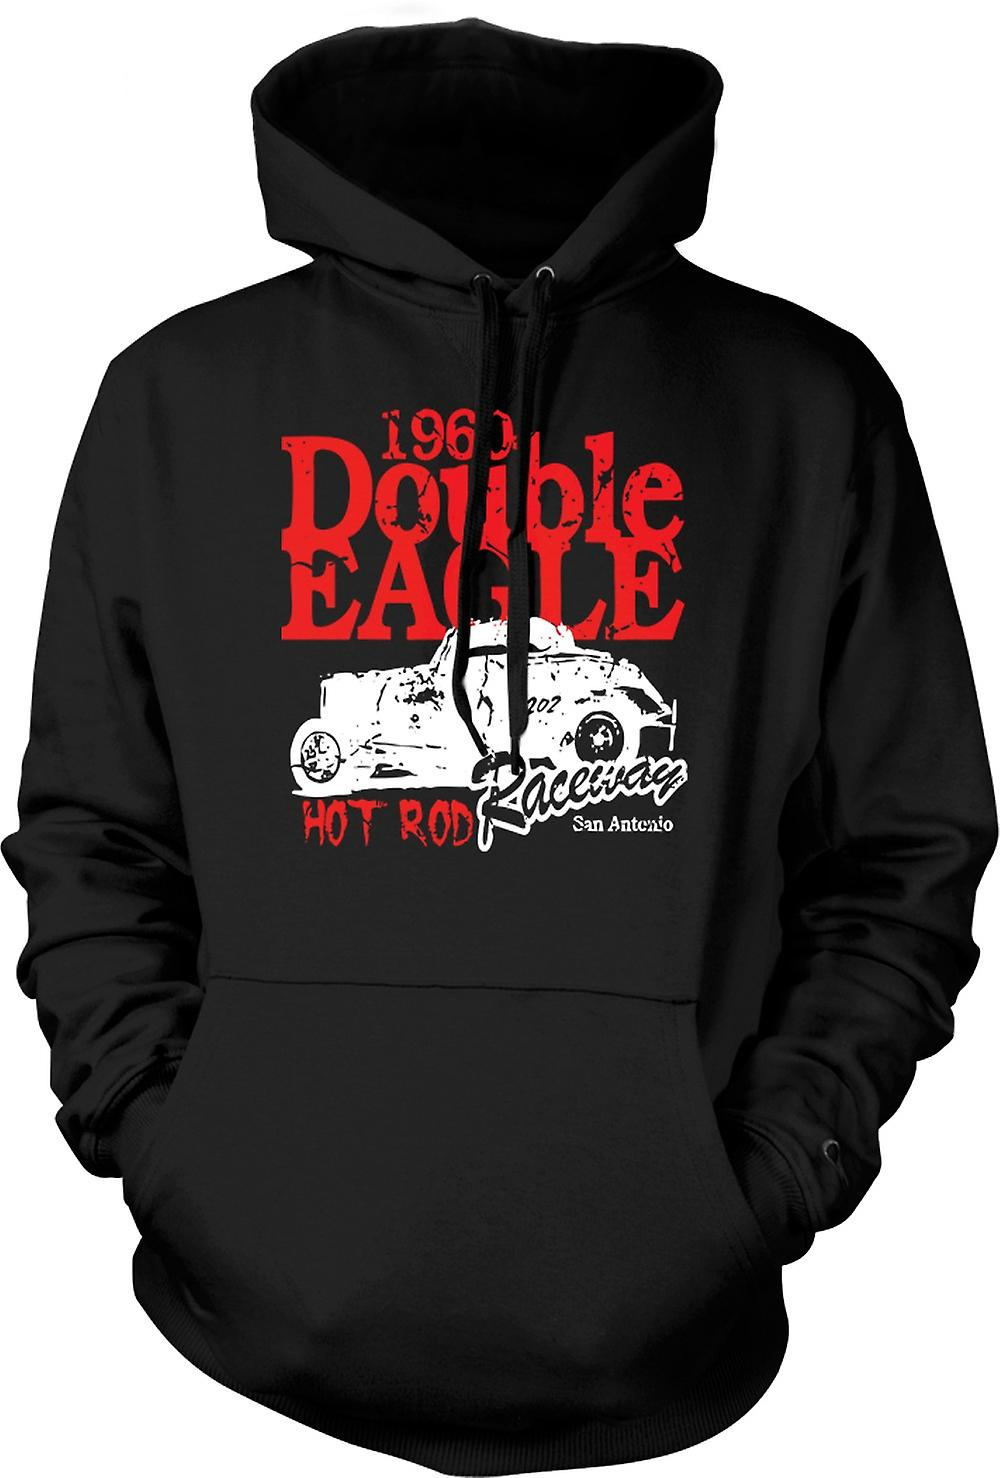 Mens Hoodie - Hot Rod 1960 Double Eagle Racing